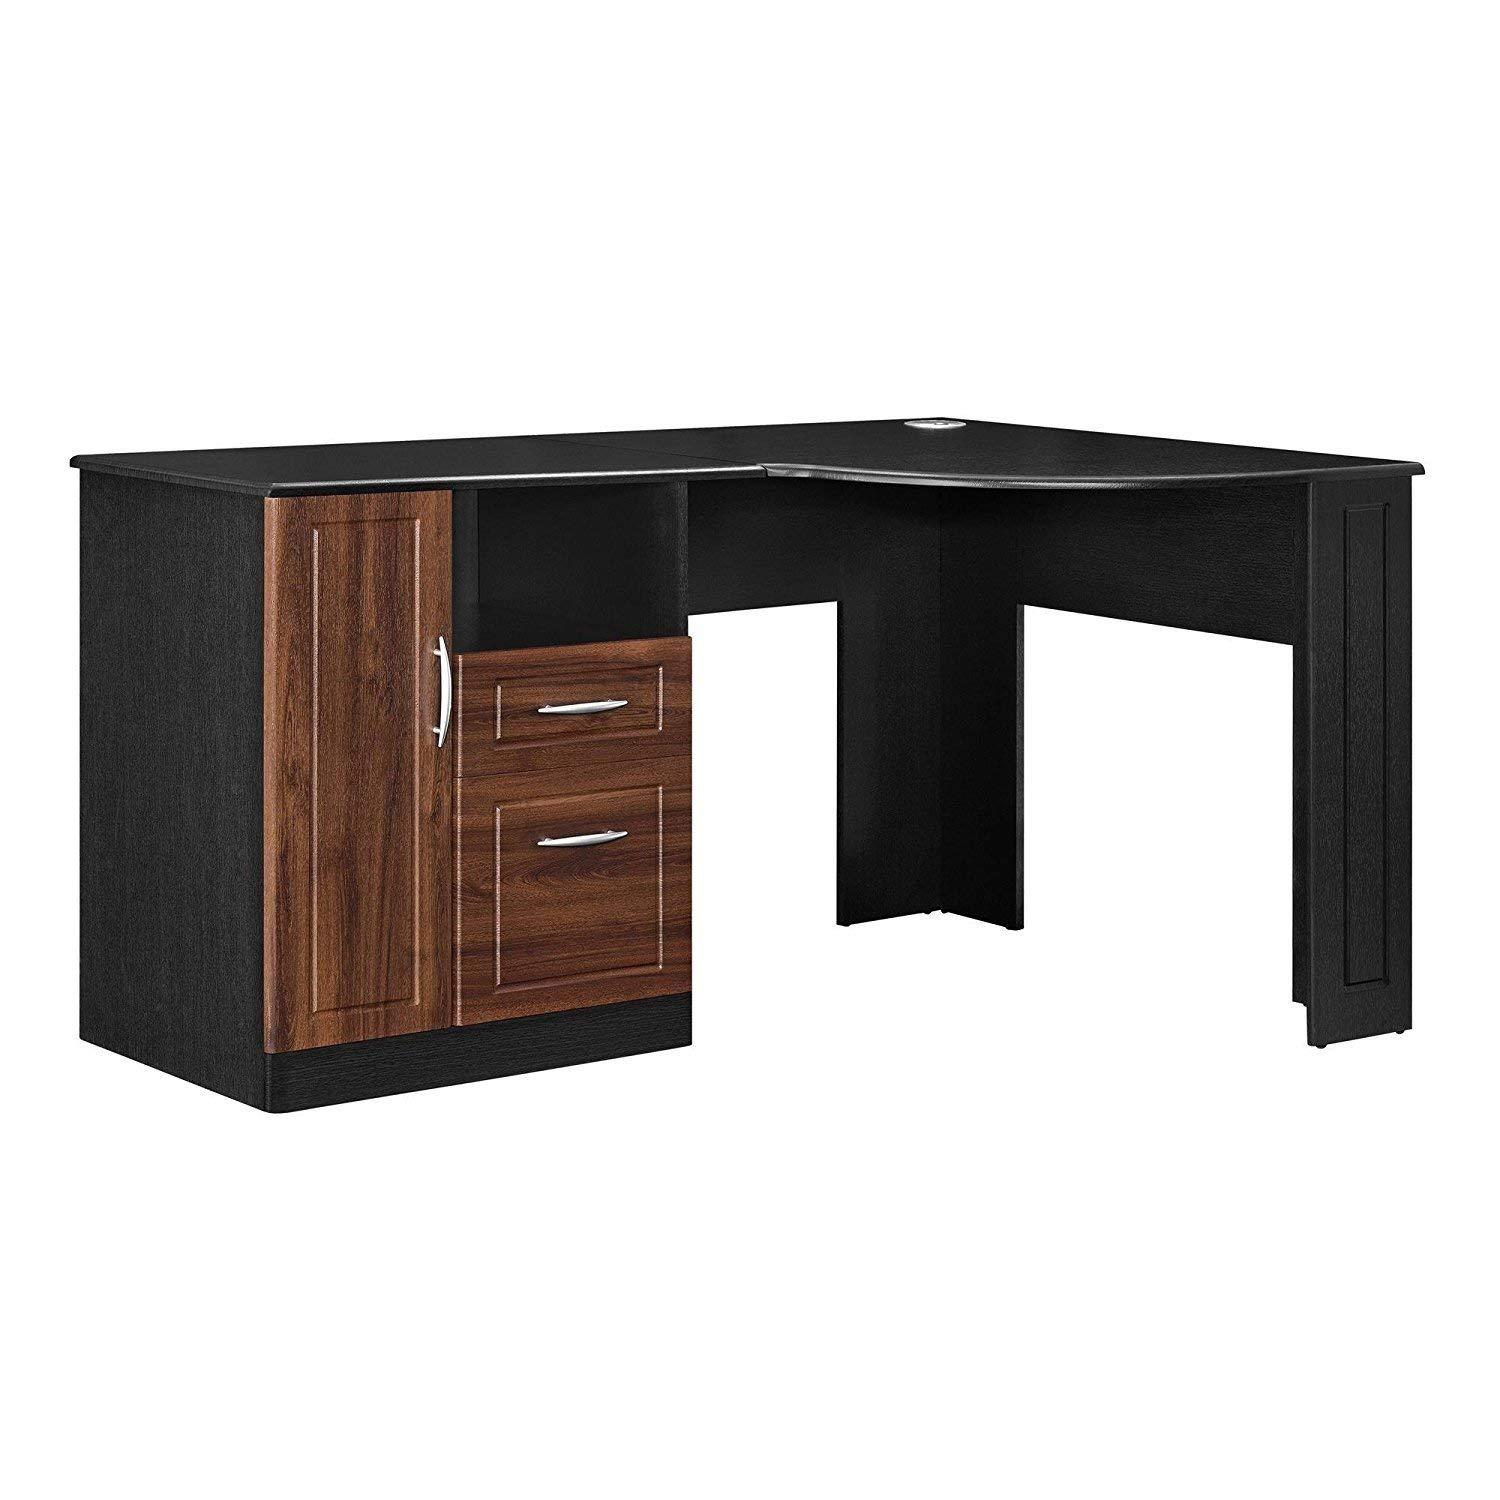 Indoor Multi-function Accent table Study Computer Home Office Desk Bedroom Living Room Modern Style End Table Sofa Side Table Coffee Table Black Corner Table